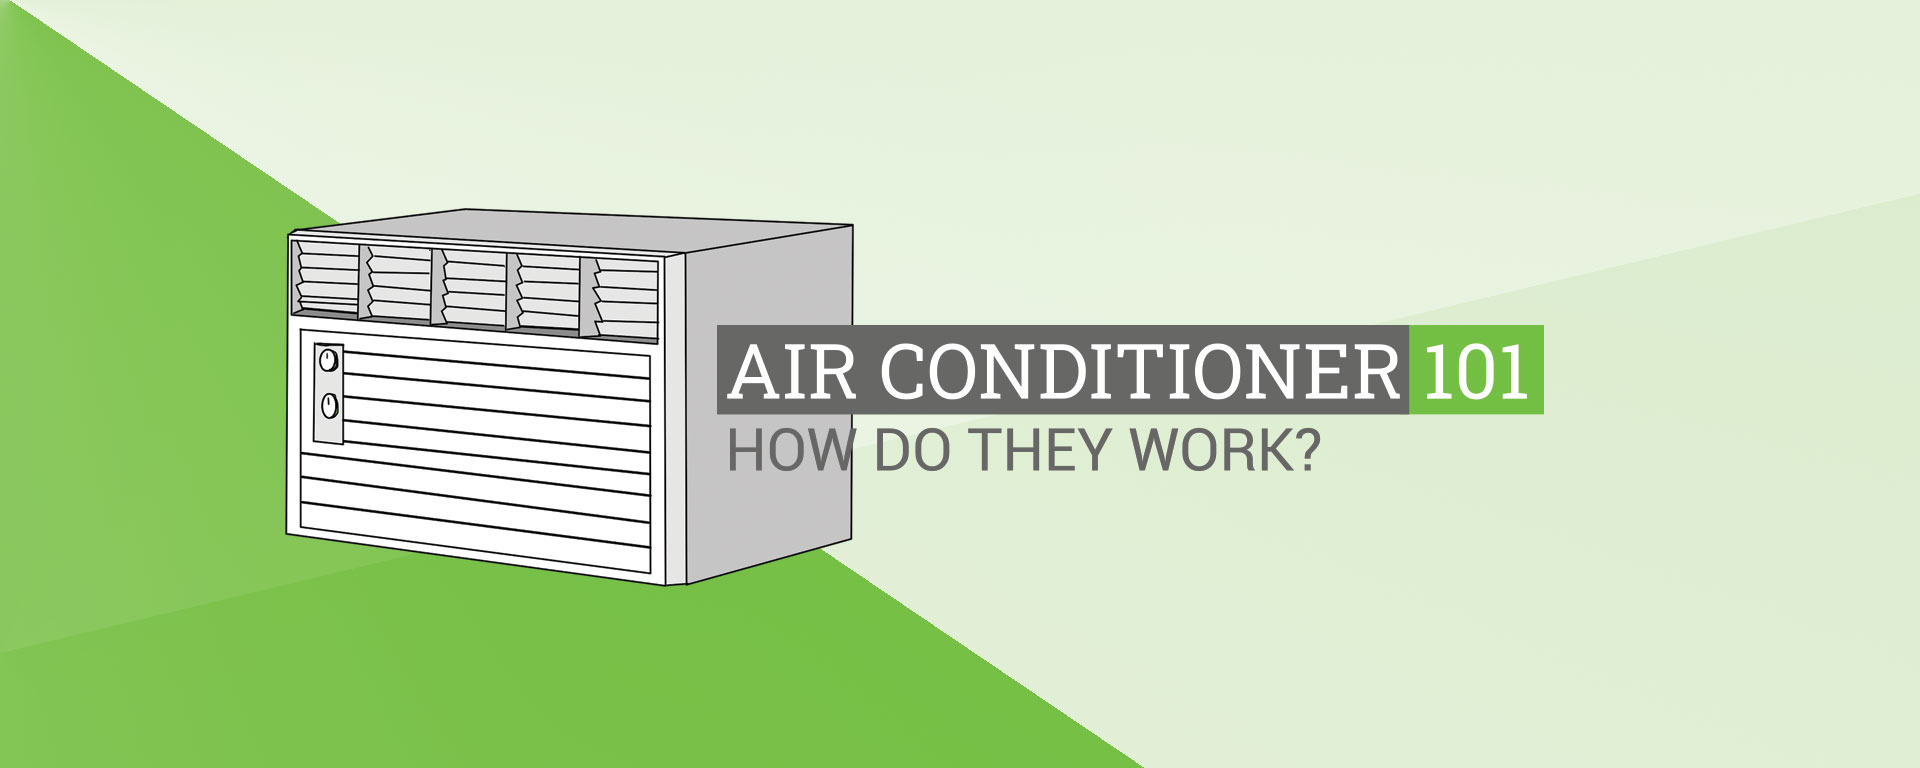 How Does An Aircon Work?